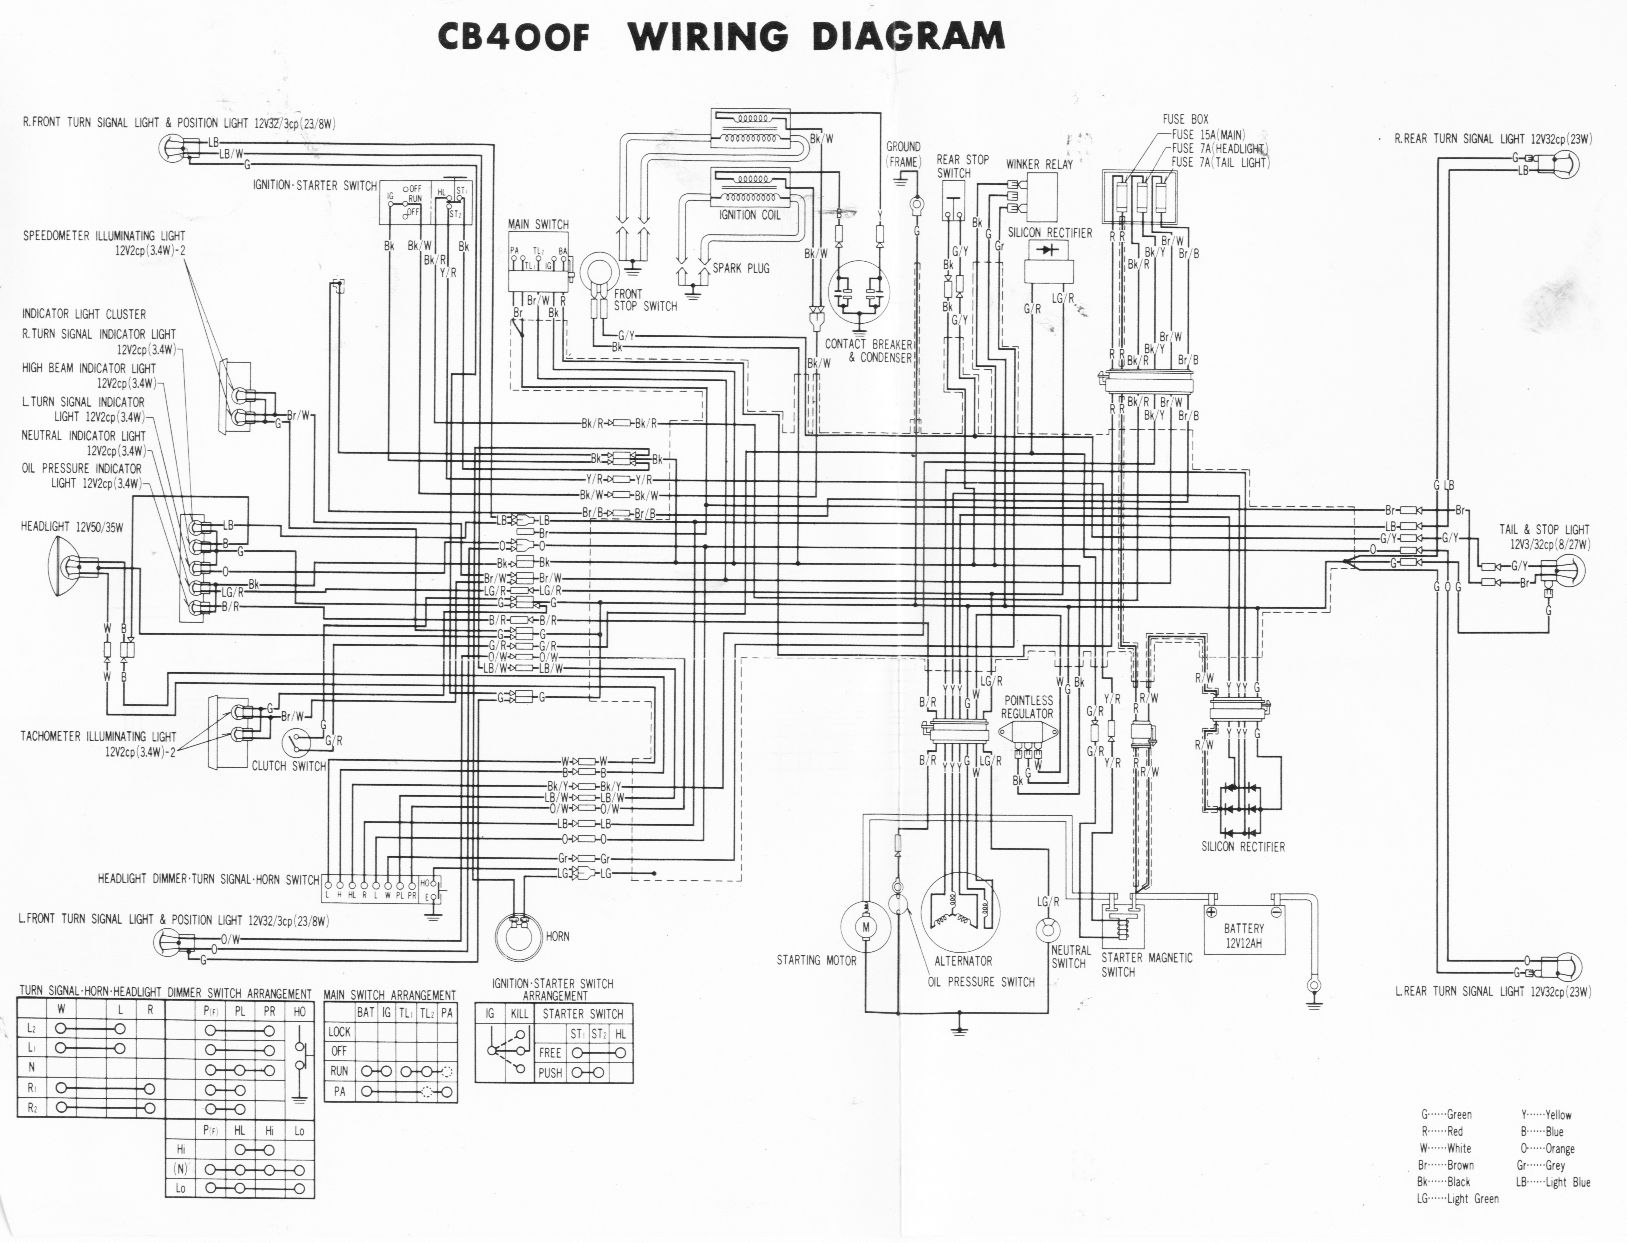 cb400f rh manuals sohc4 net honda cb400f wiring diagram